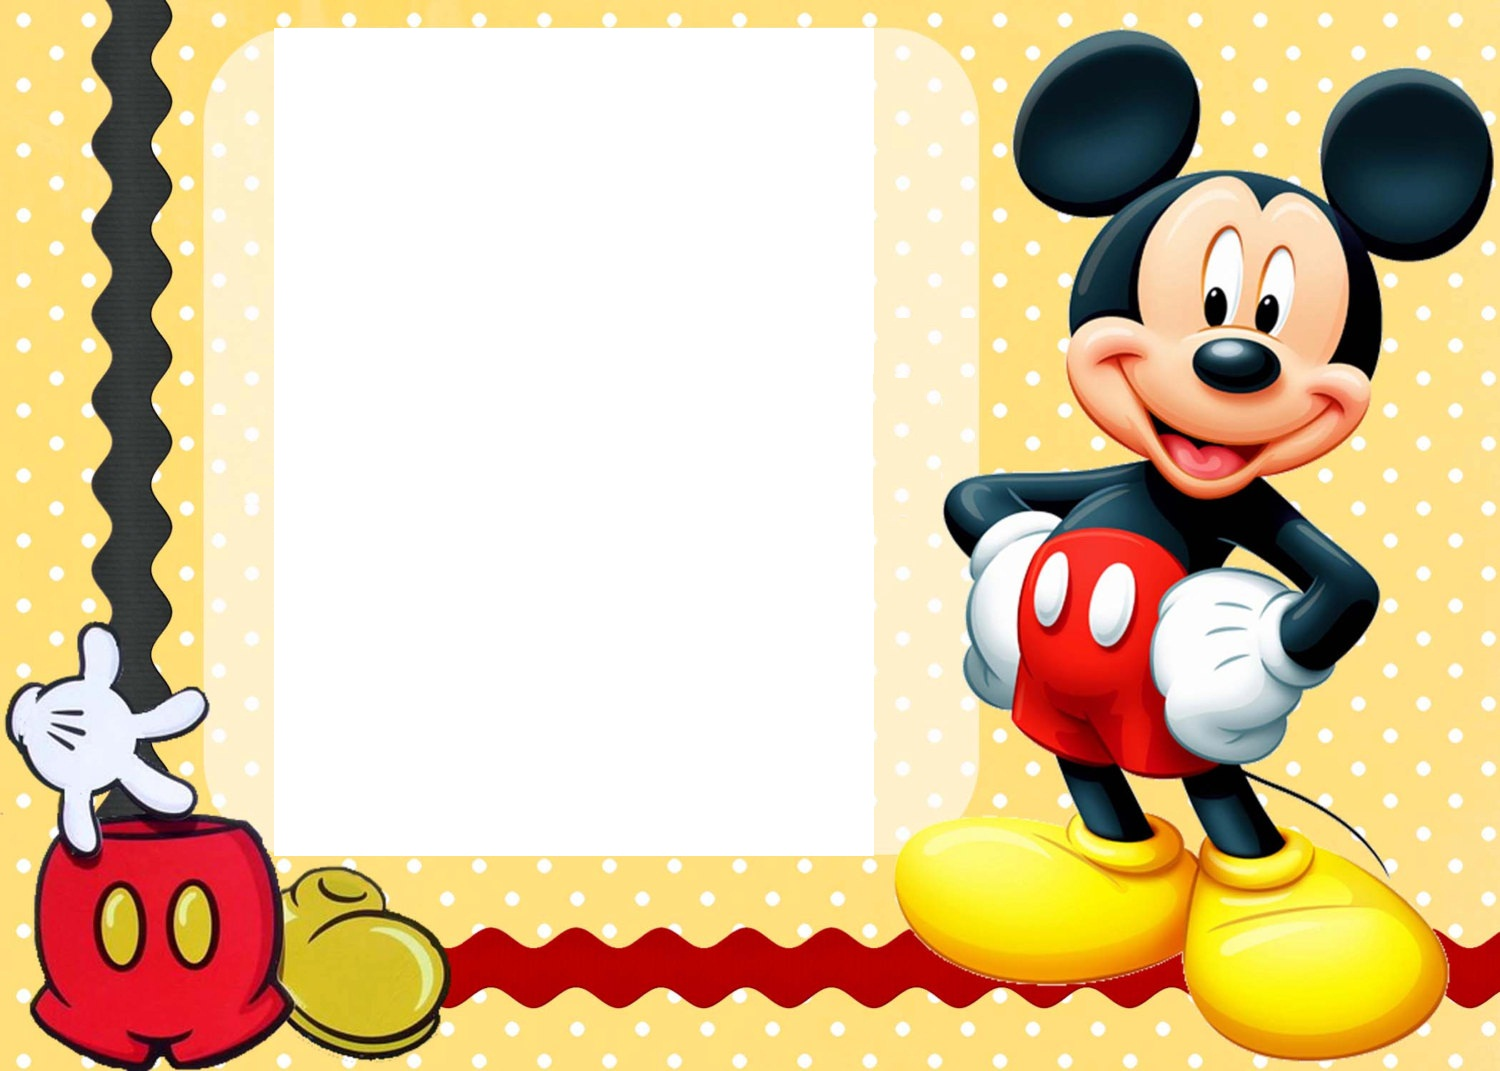 Mickey Mouse Birthday Borders Clipart Kid